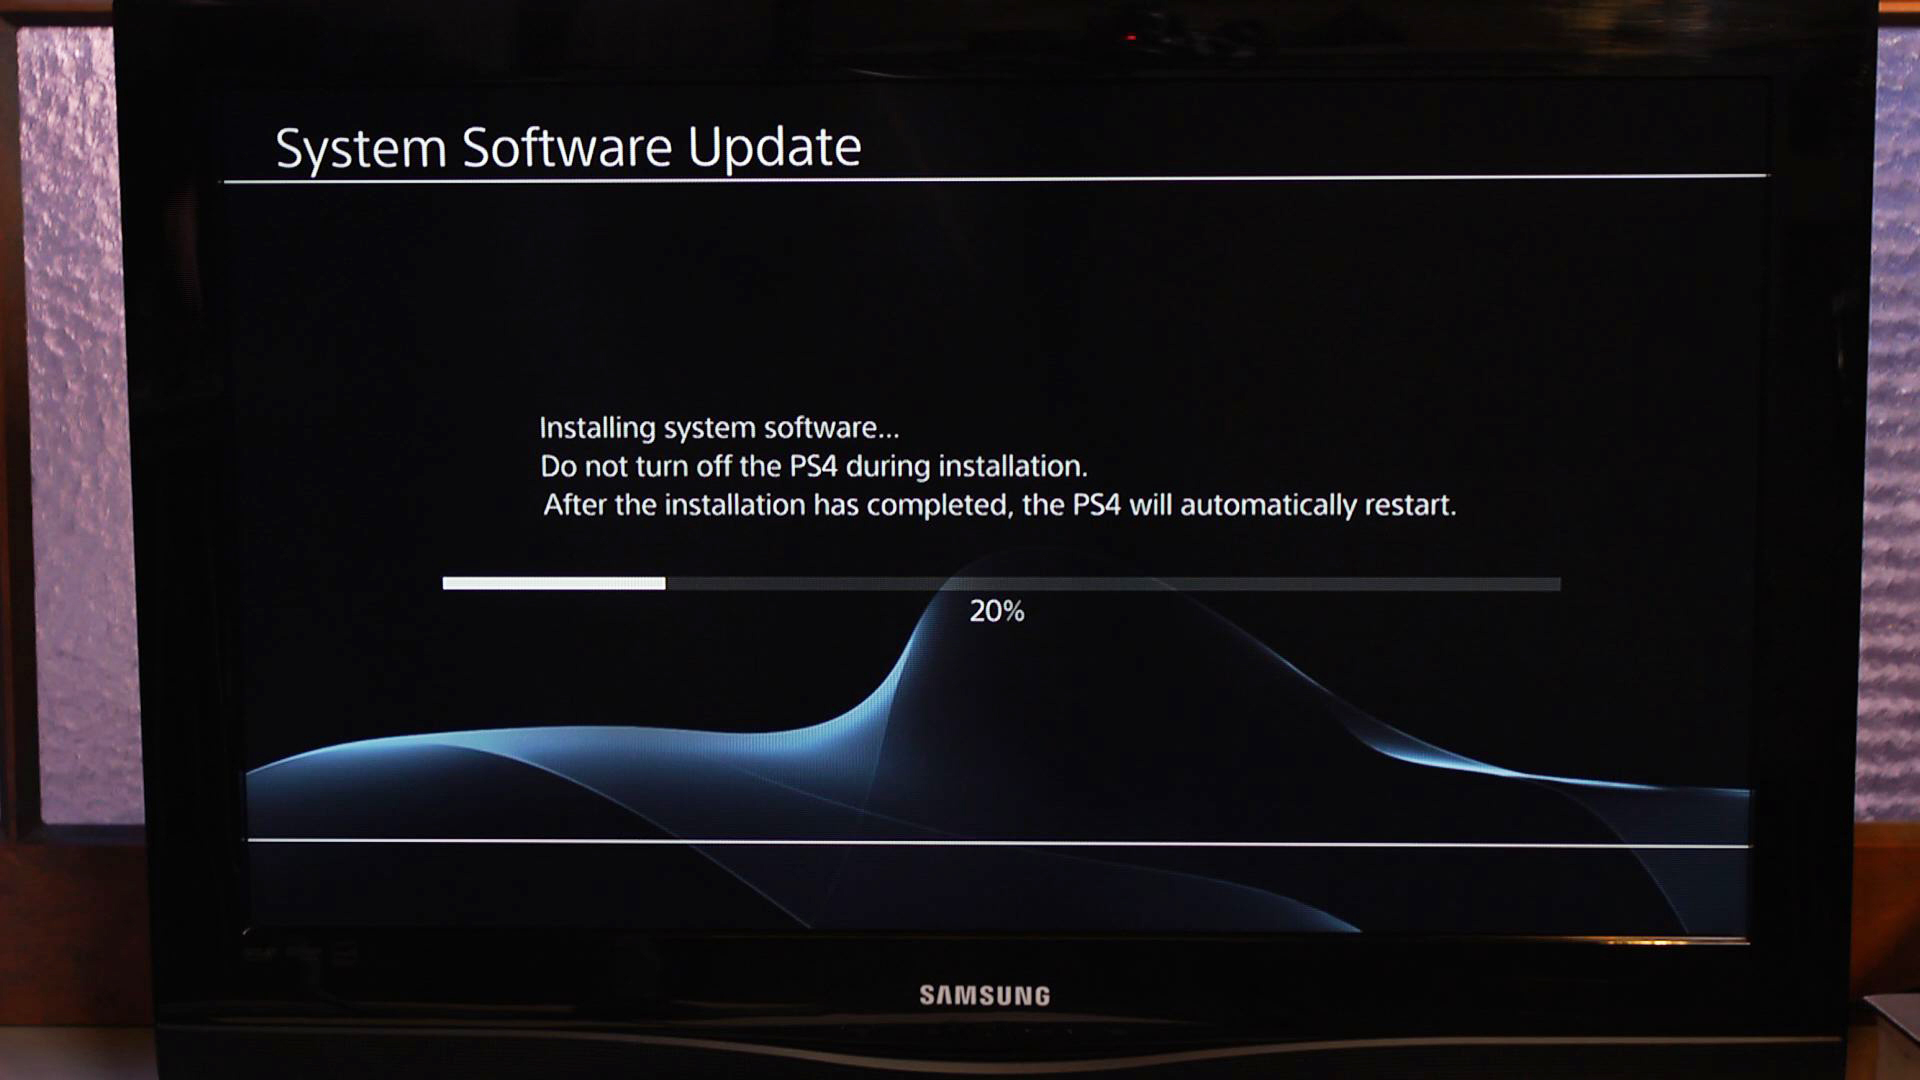 Video: Use a USB device to install PS4 updates